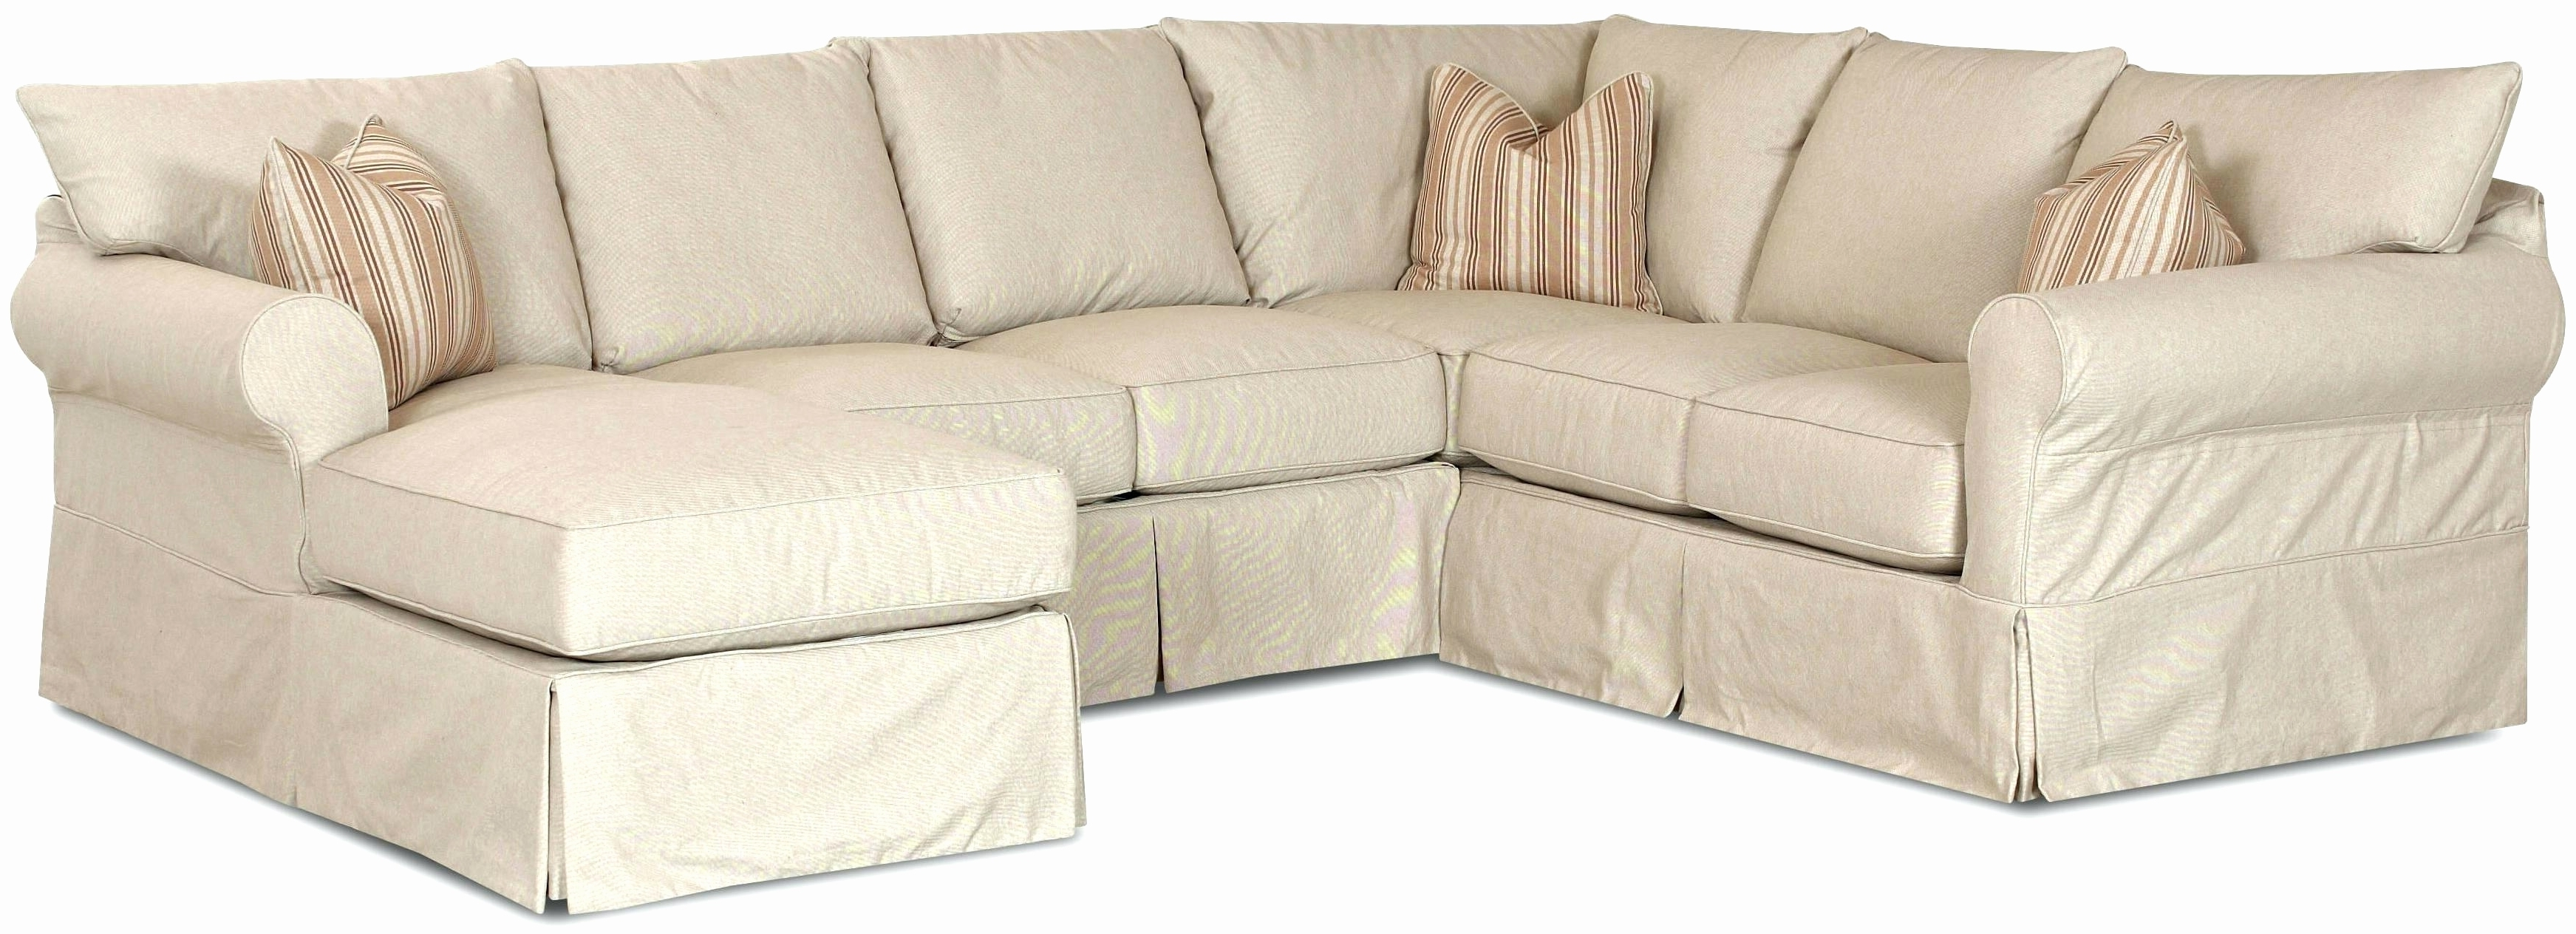 Fresh Right Sectional Sofa 2018 – Couches And Sofas Ideas With Regard To Most Recently Released Small Sectionals With Chaise (View 9 of 15)